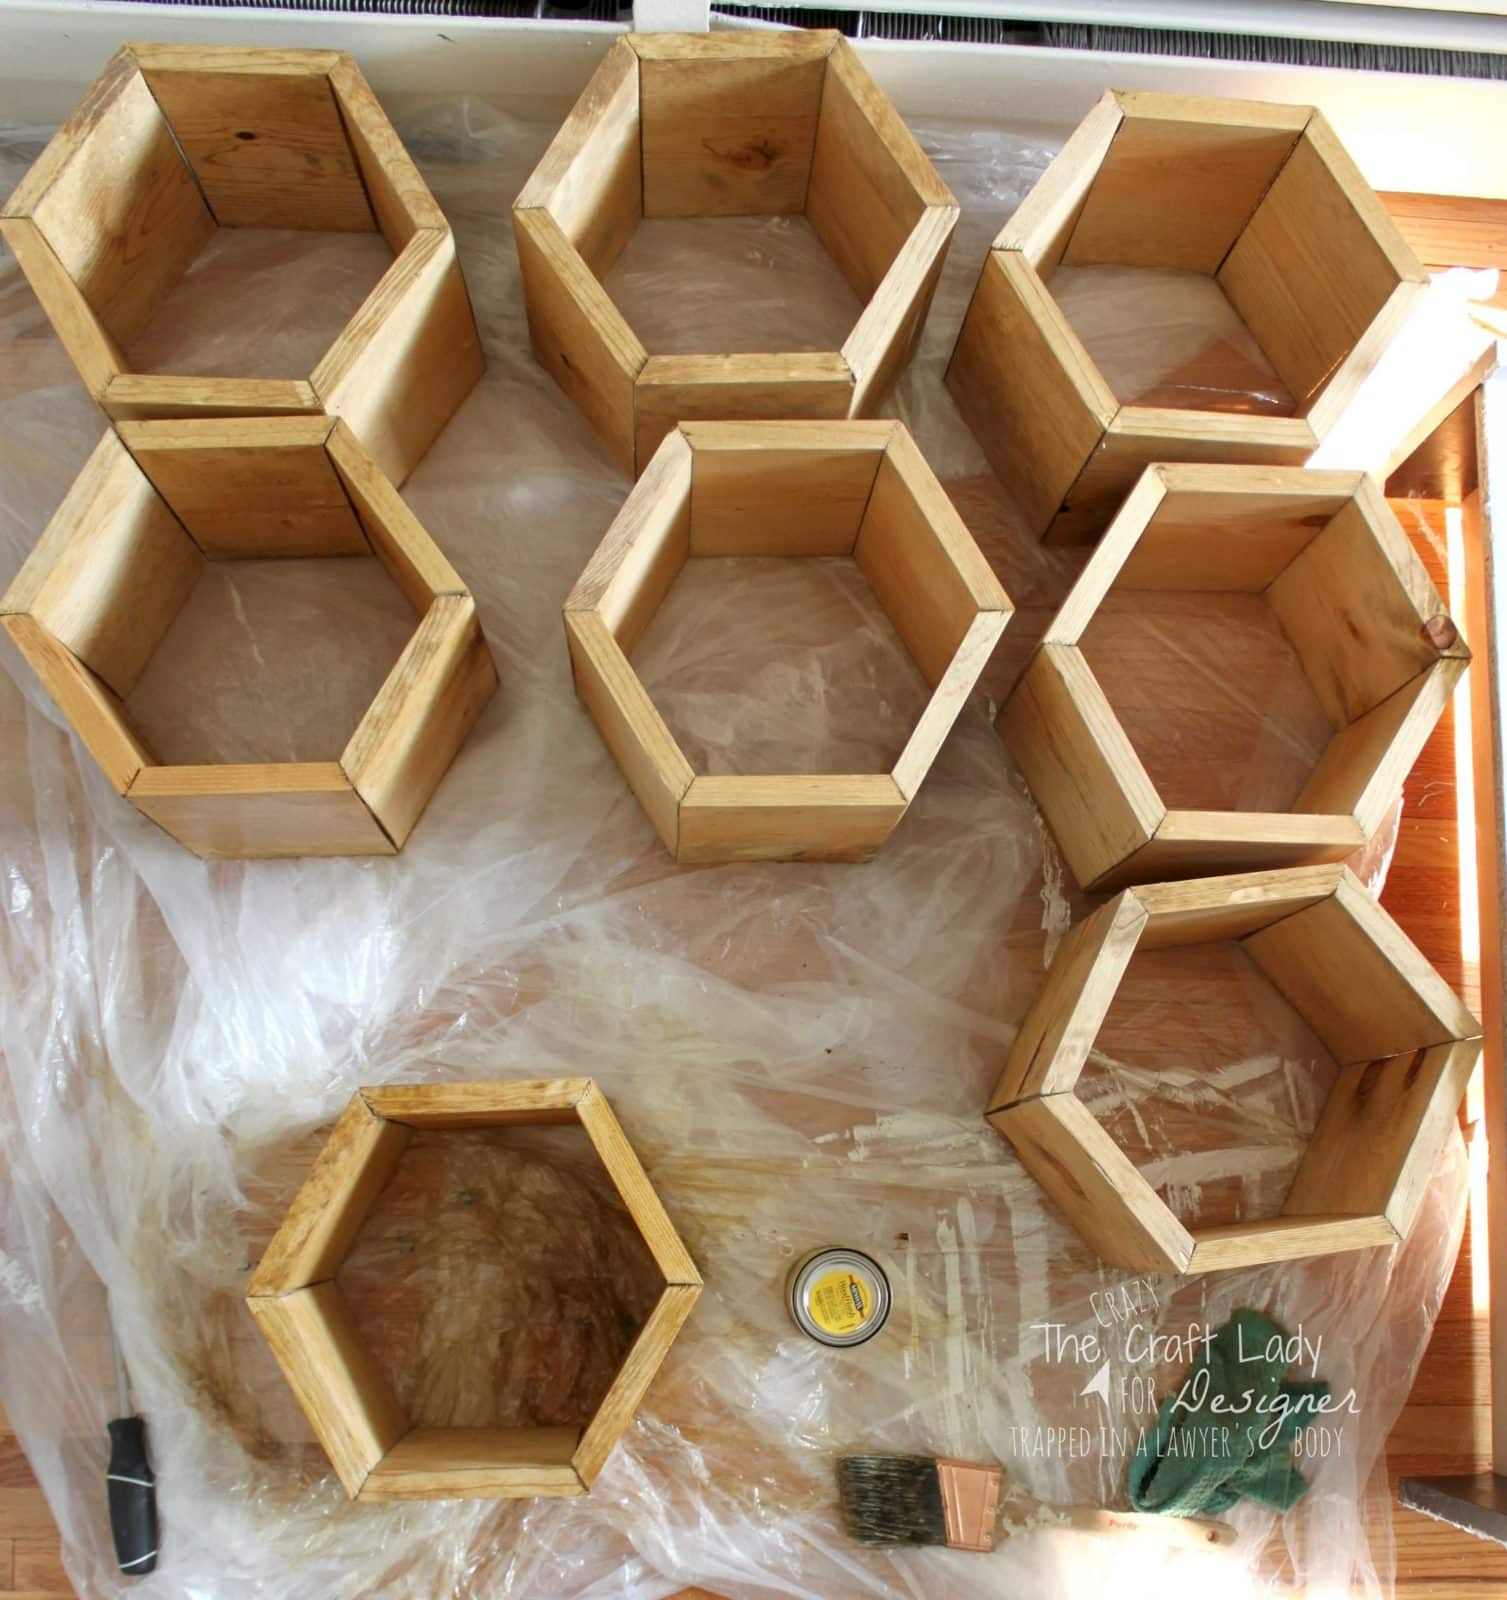 Make A DIY Shoe Rack Using An Old Bookshelf And Making Hexagon Inserts To